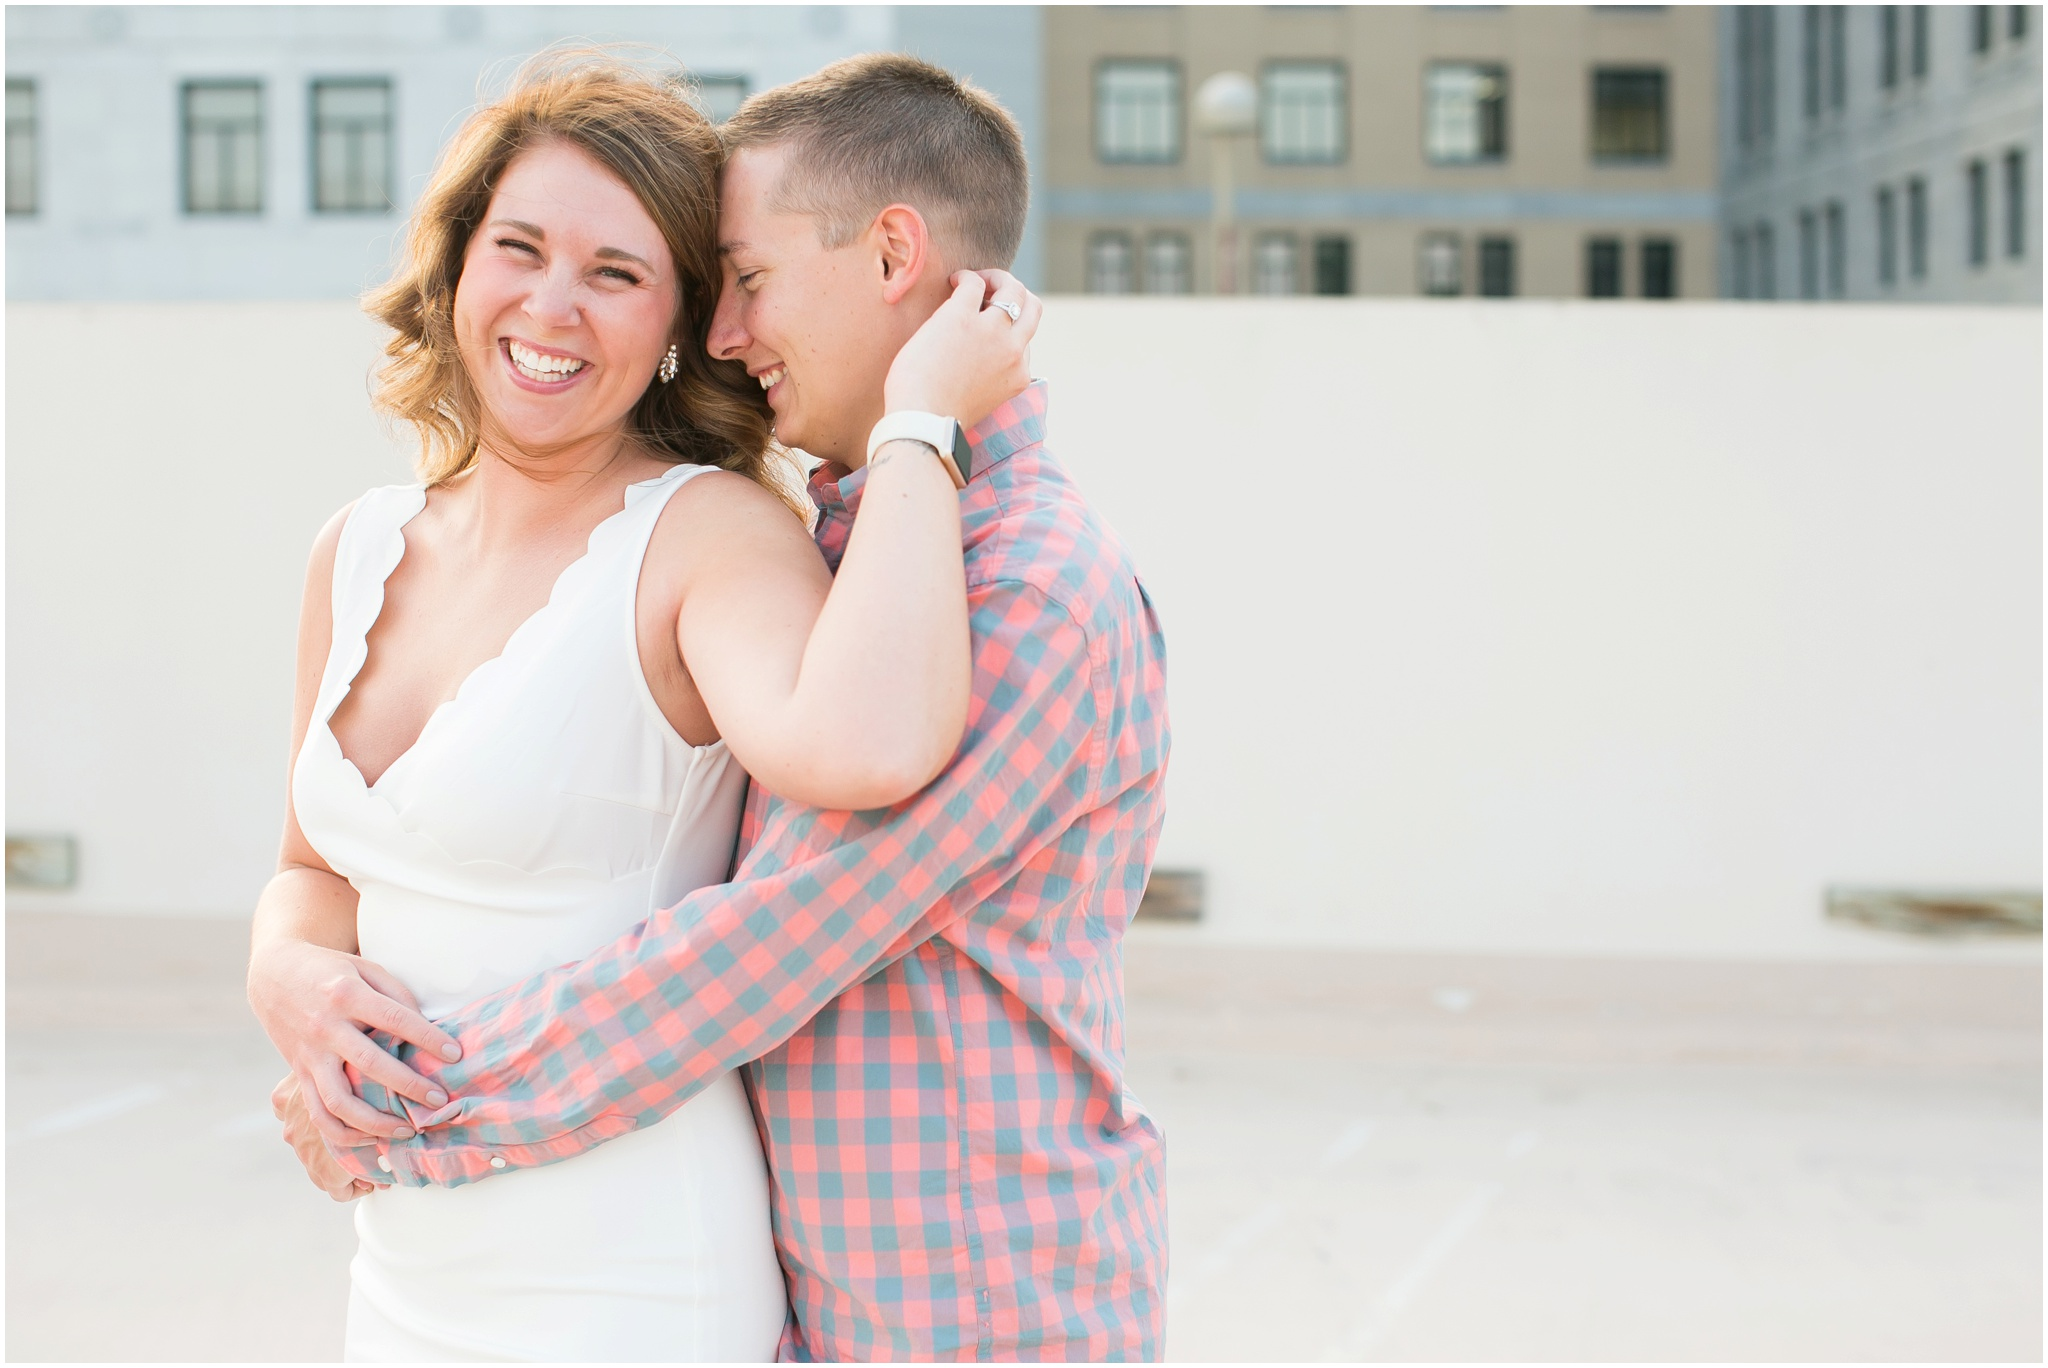 Downtown_Madison_Wisconsin_Engagement_Session_Waterfront_Monona_Terrace_0472.jpg